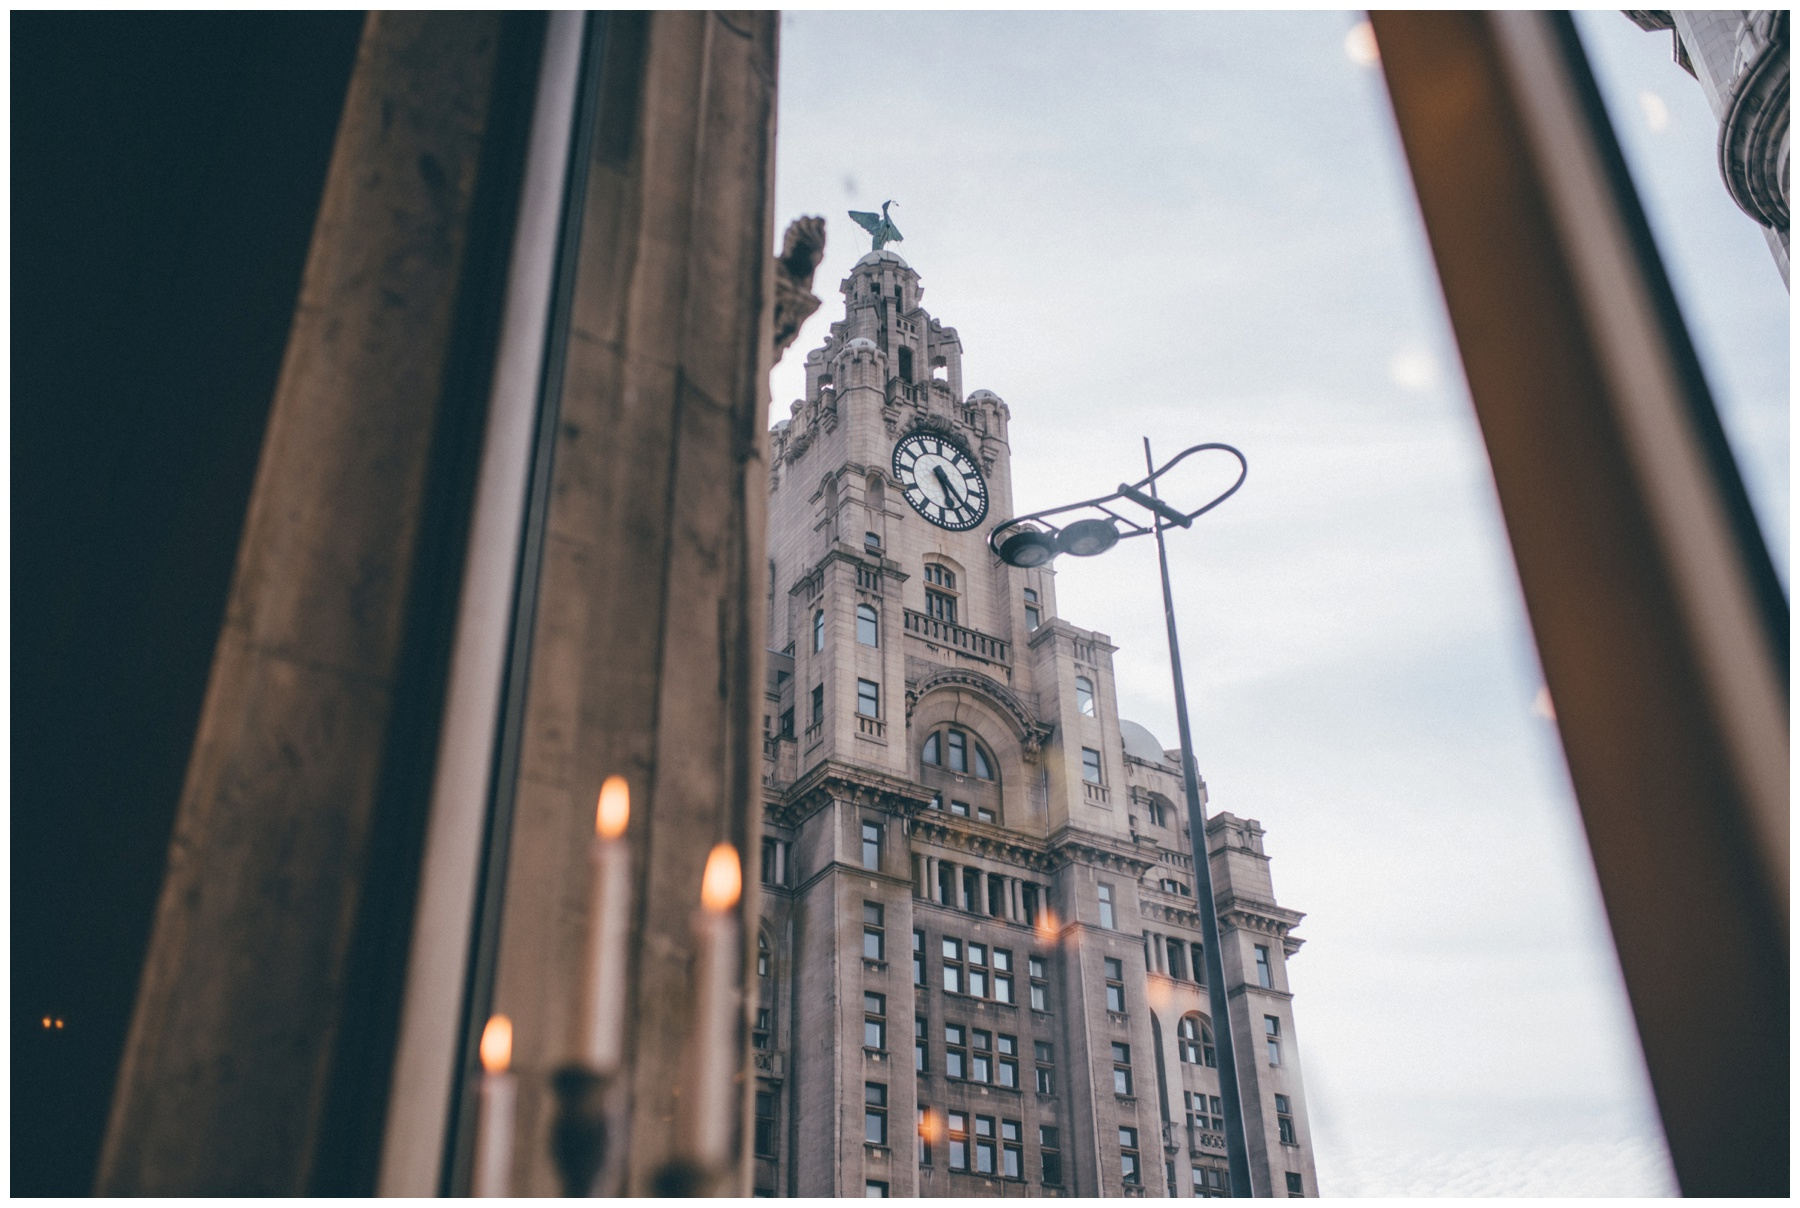 The Liver Building from the windows of Wedding venue Oh Me Oh My in Liverpool City Centre.